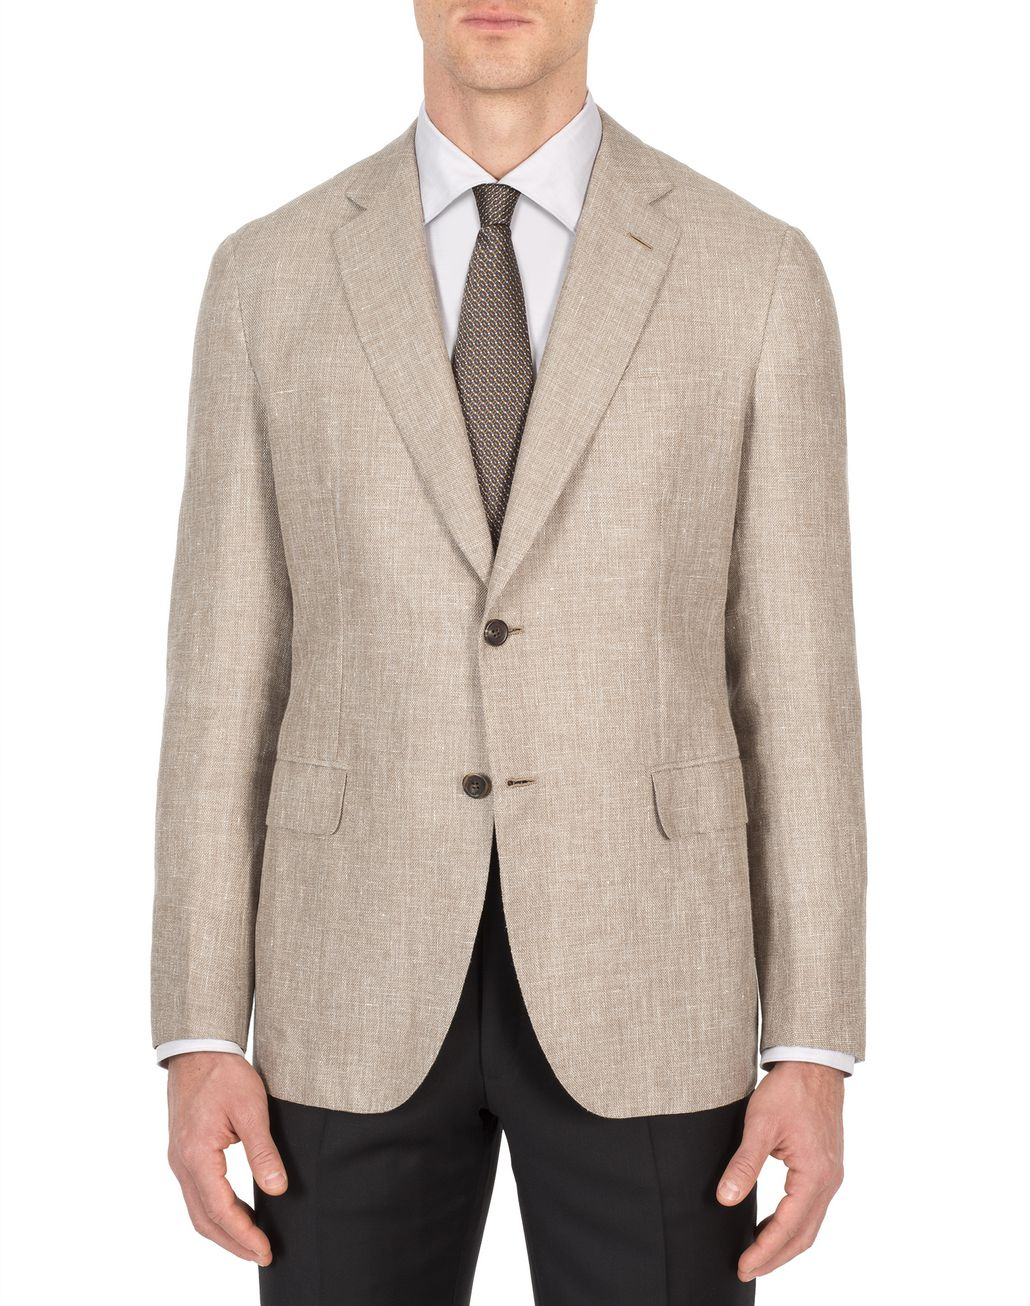 BRIONI Beige Hopsack Linen Plume Jacket Suits & Jackets Man r